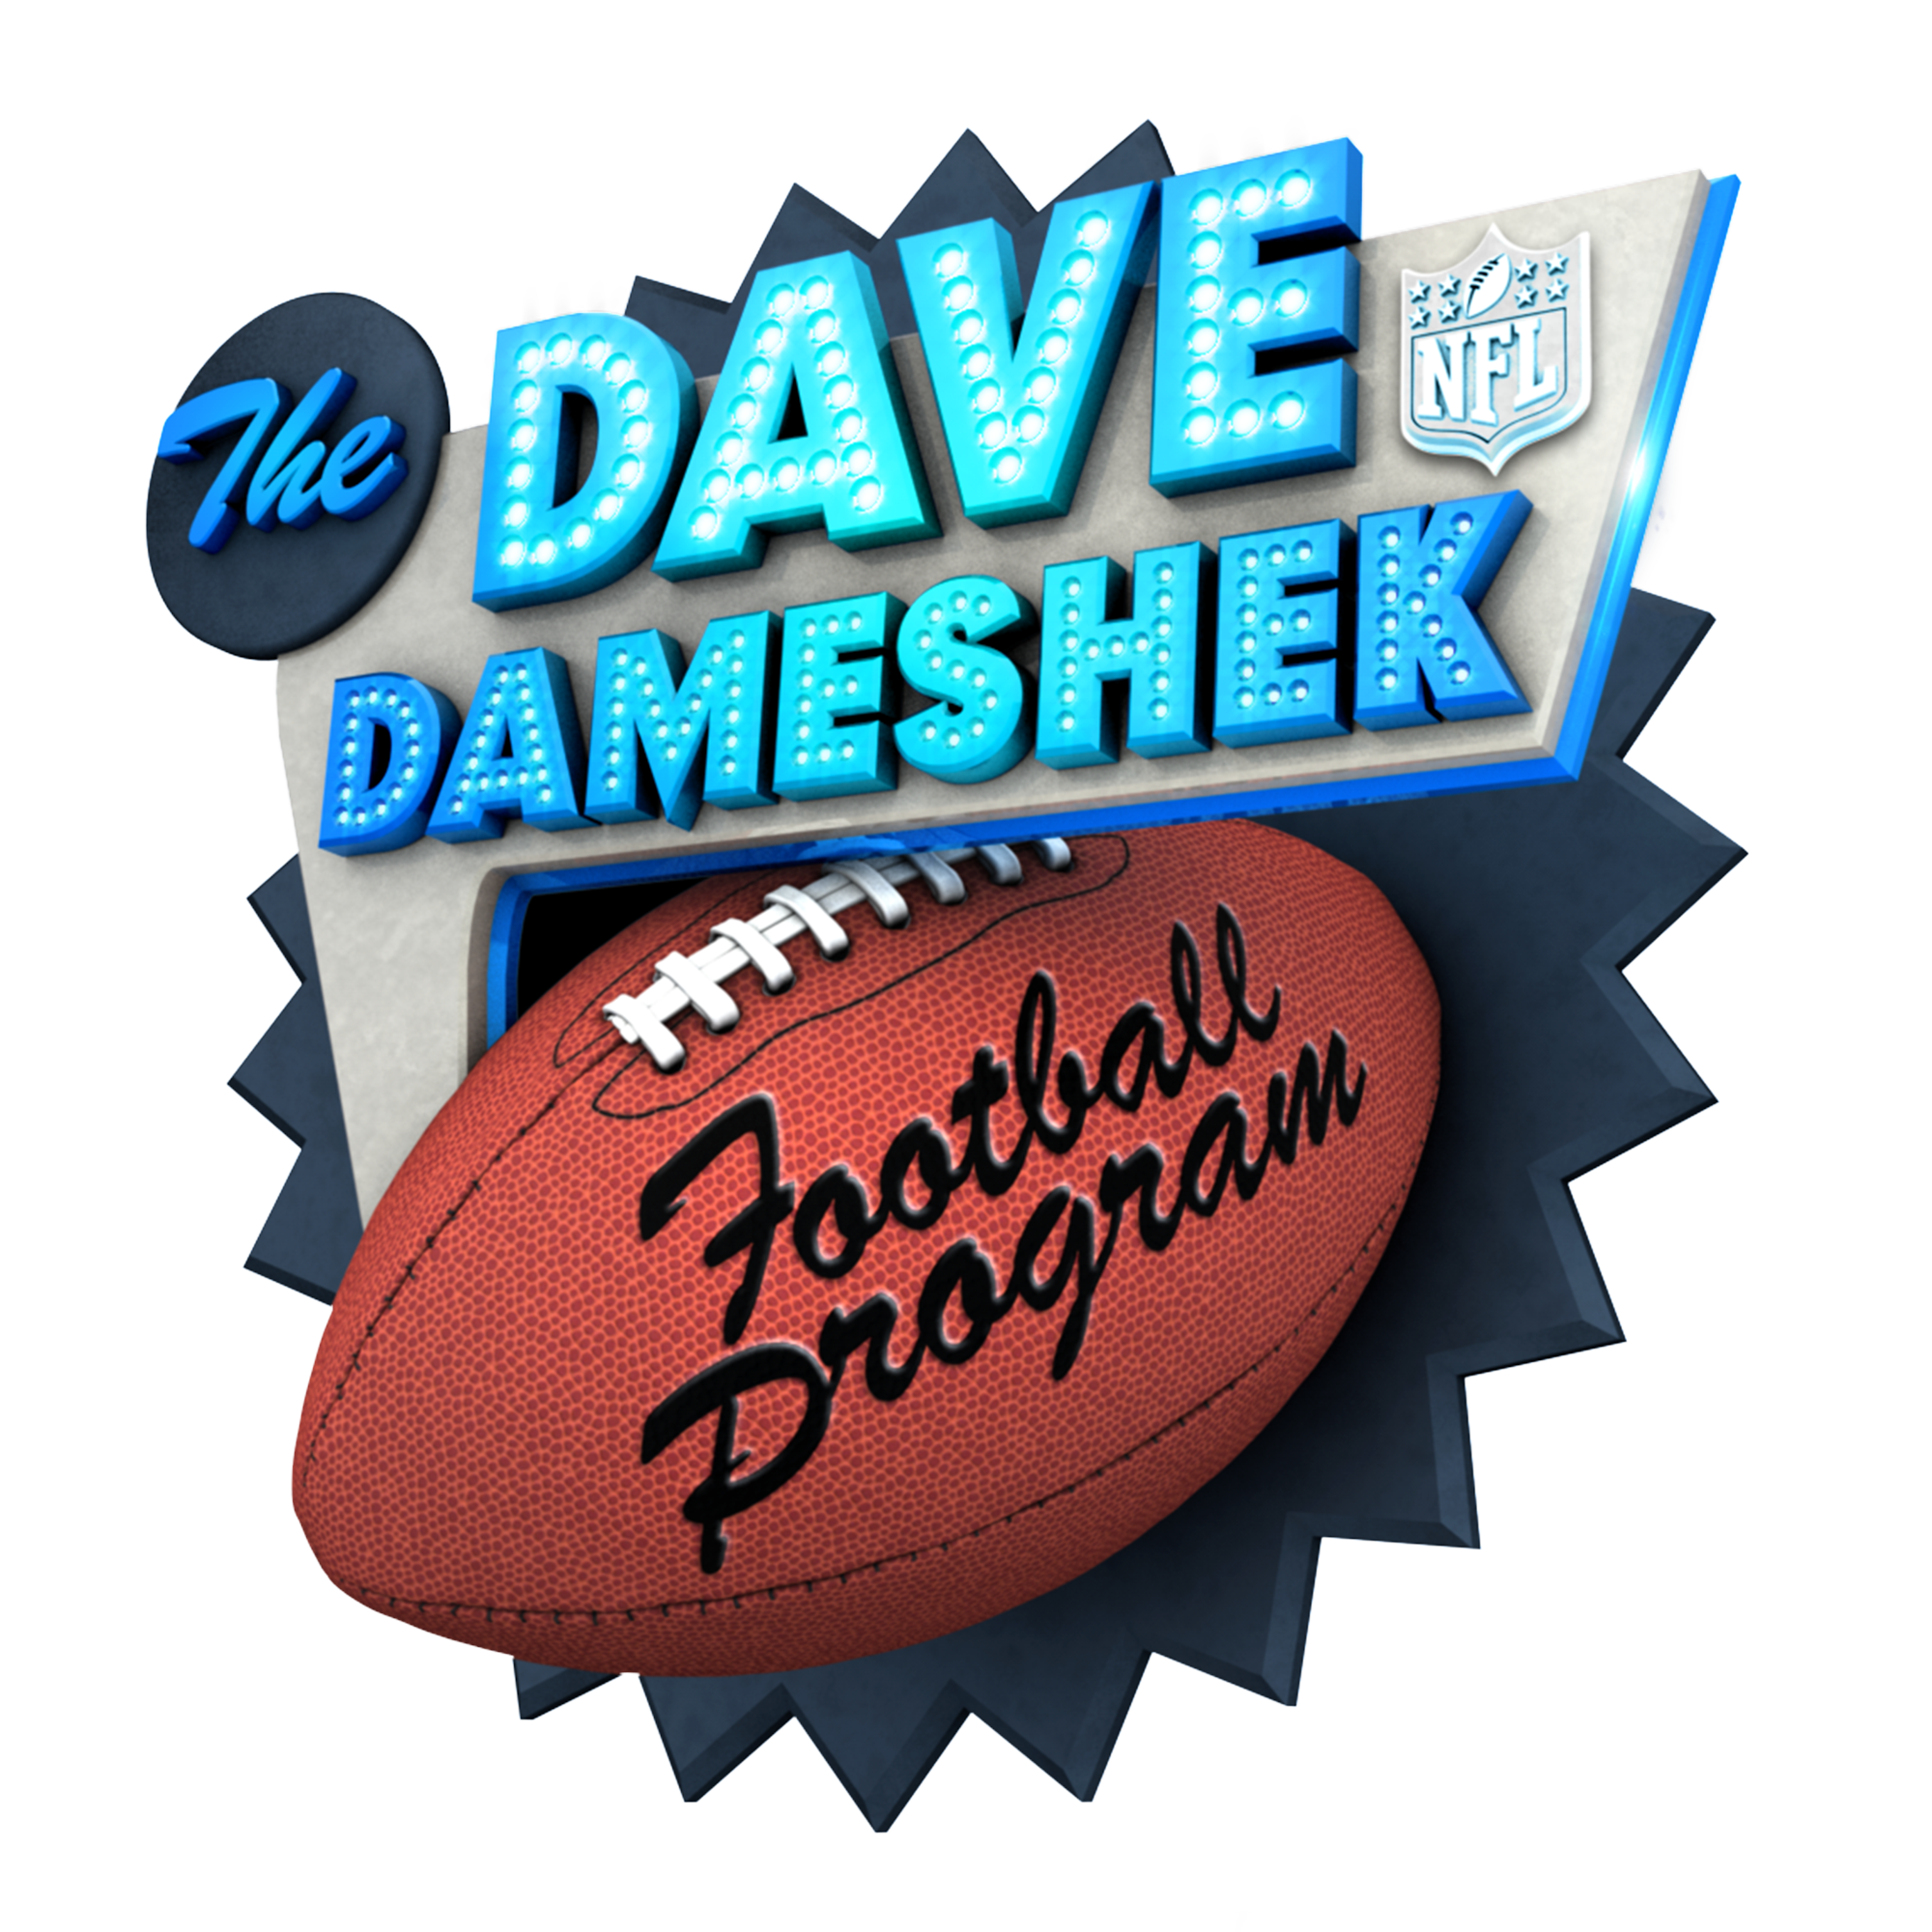 The Dave Dameshek Football Progam